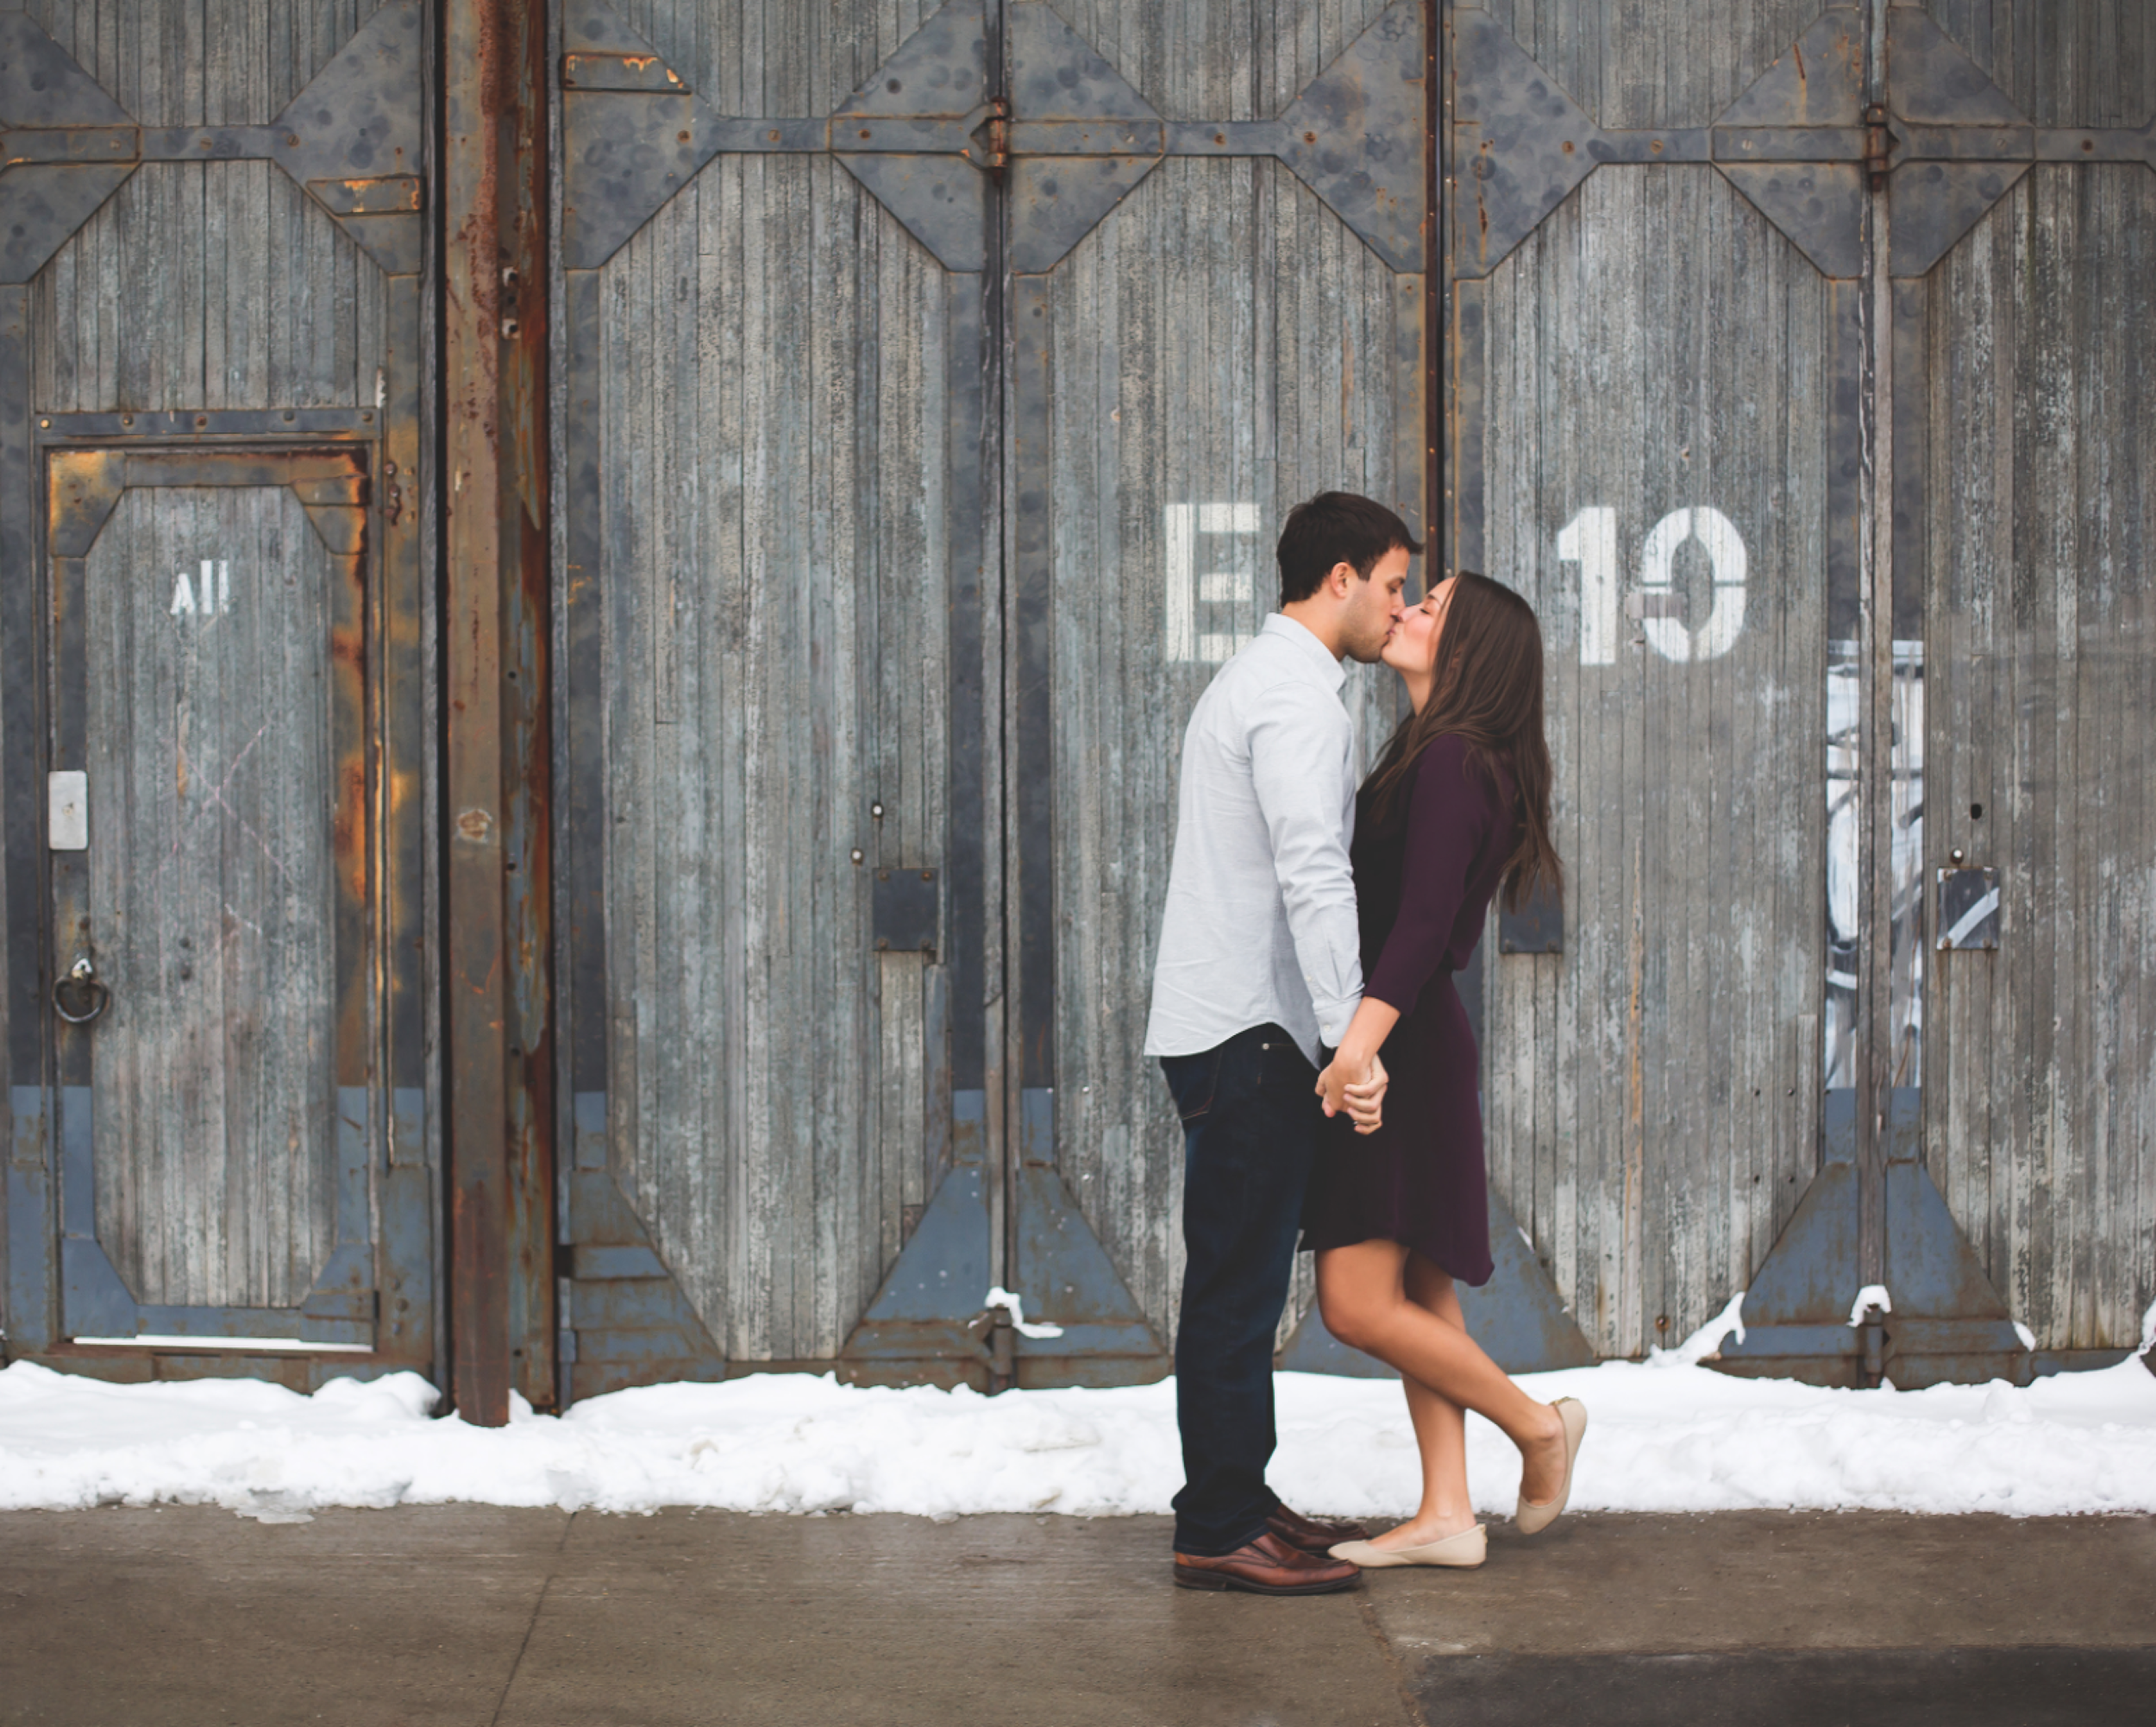 Engagement-Session-Downtown-Toronto-Hamilton-Burlington-Oakville-Niagara-Wedding-Photographer-Engaged-Photography-Artscape-Wynchwood-Barn-Urban-HamOnt-Engaged-Moments-by-Lauren-Photo-Image-15.png